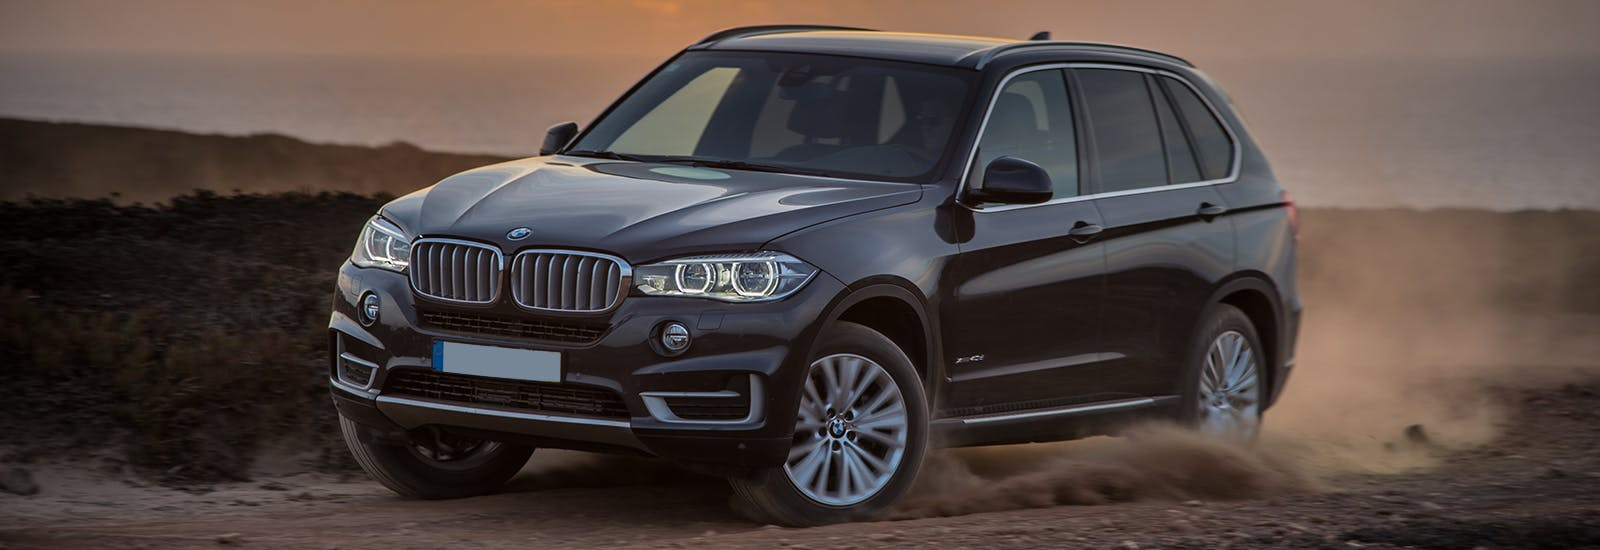 new bmw x7 price specs and release date carwow. Black Bedroom Furniture Sets. Home Design Ideas